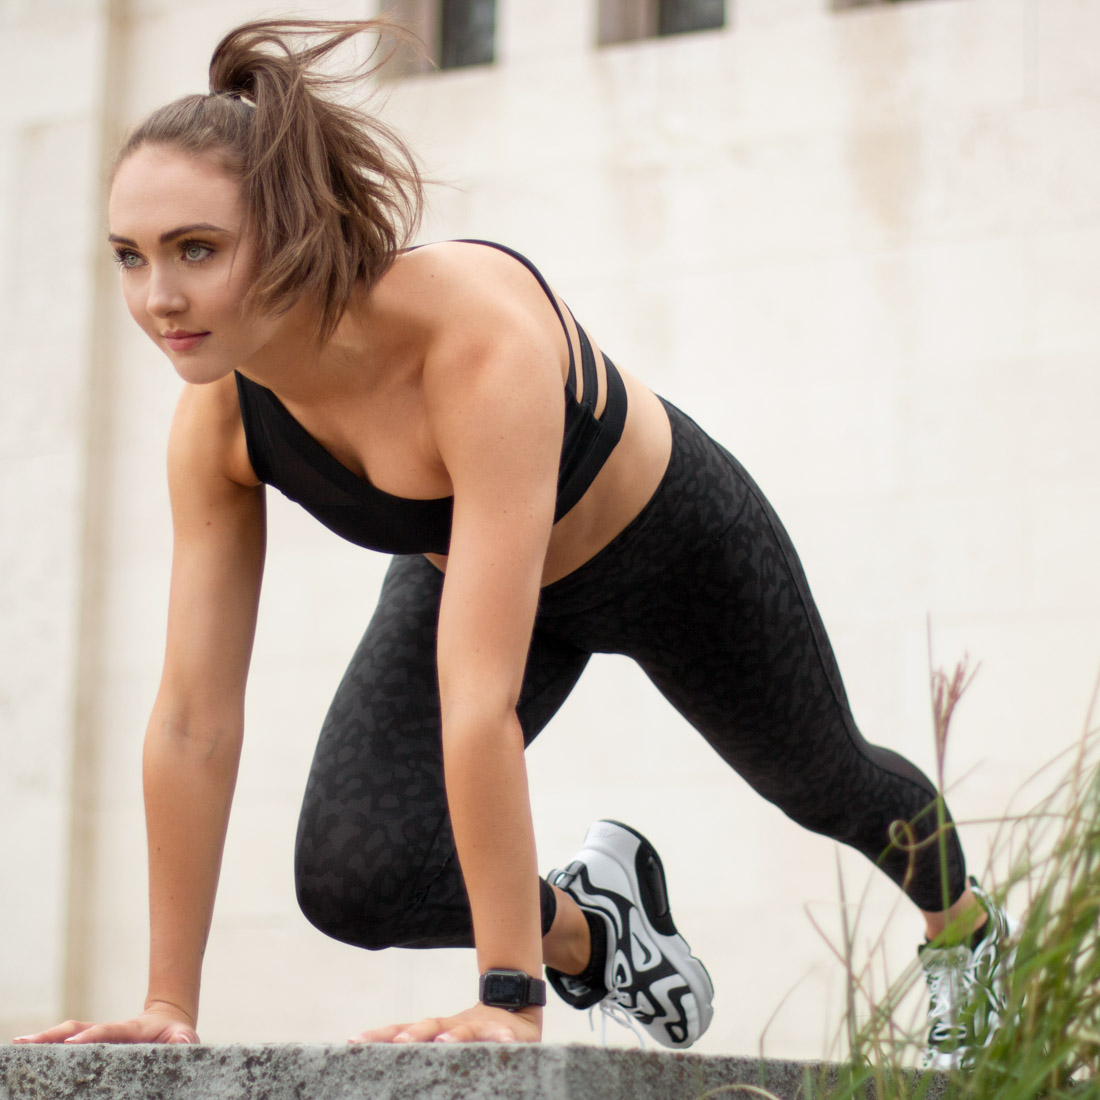 Outdoor fitness photoshoot in Birmingham city centre, fitness photography West Midlands